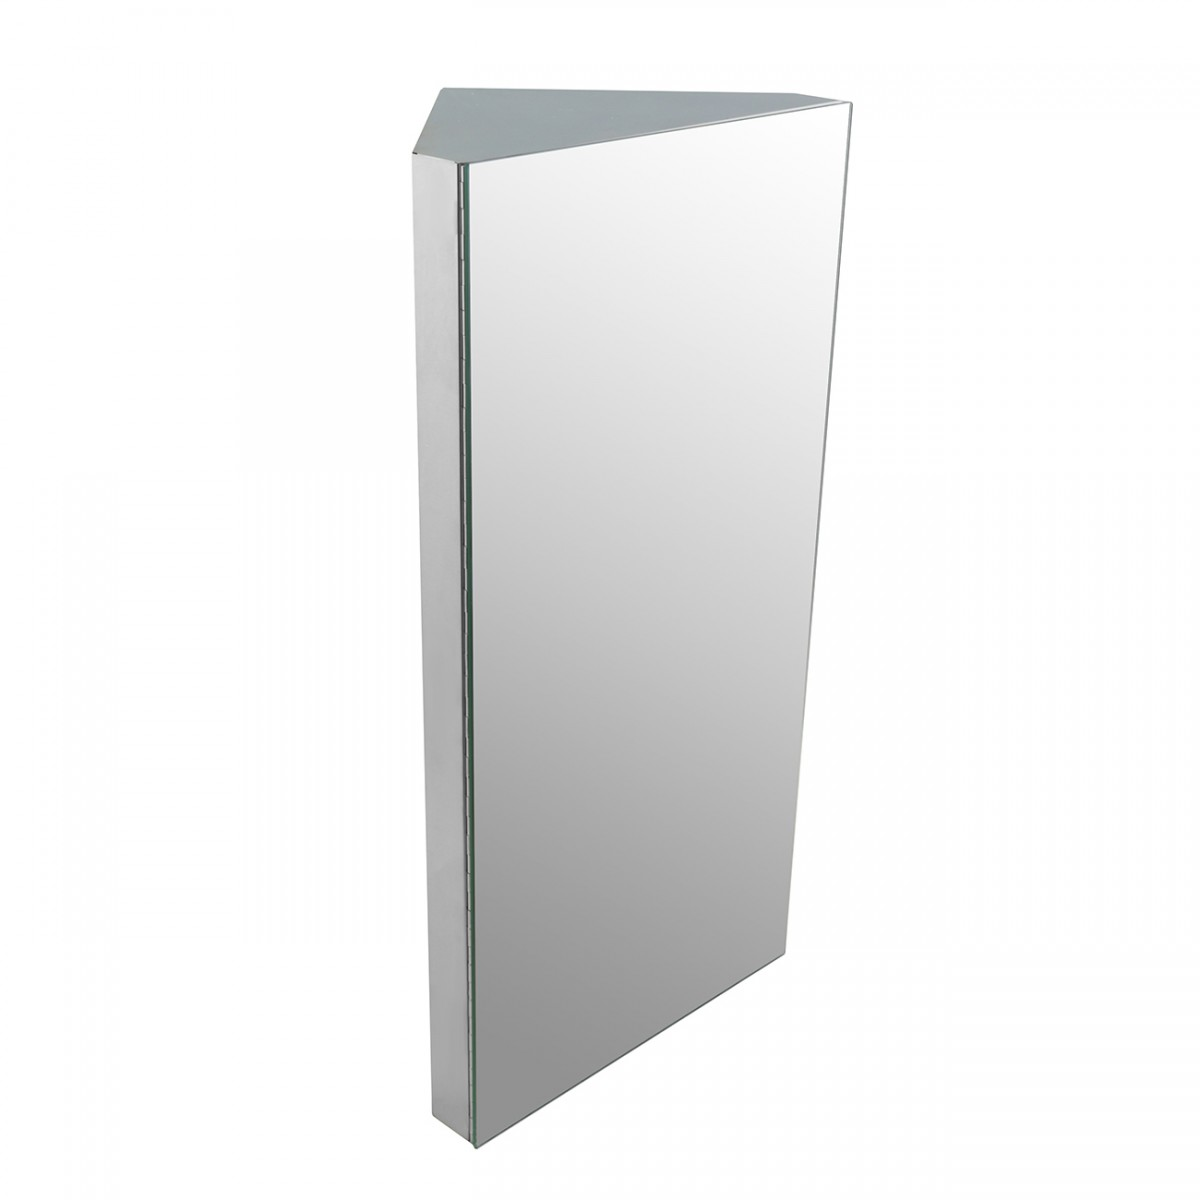 Polished Stainless Steel Medicine Cabinet With Mirror